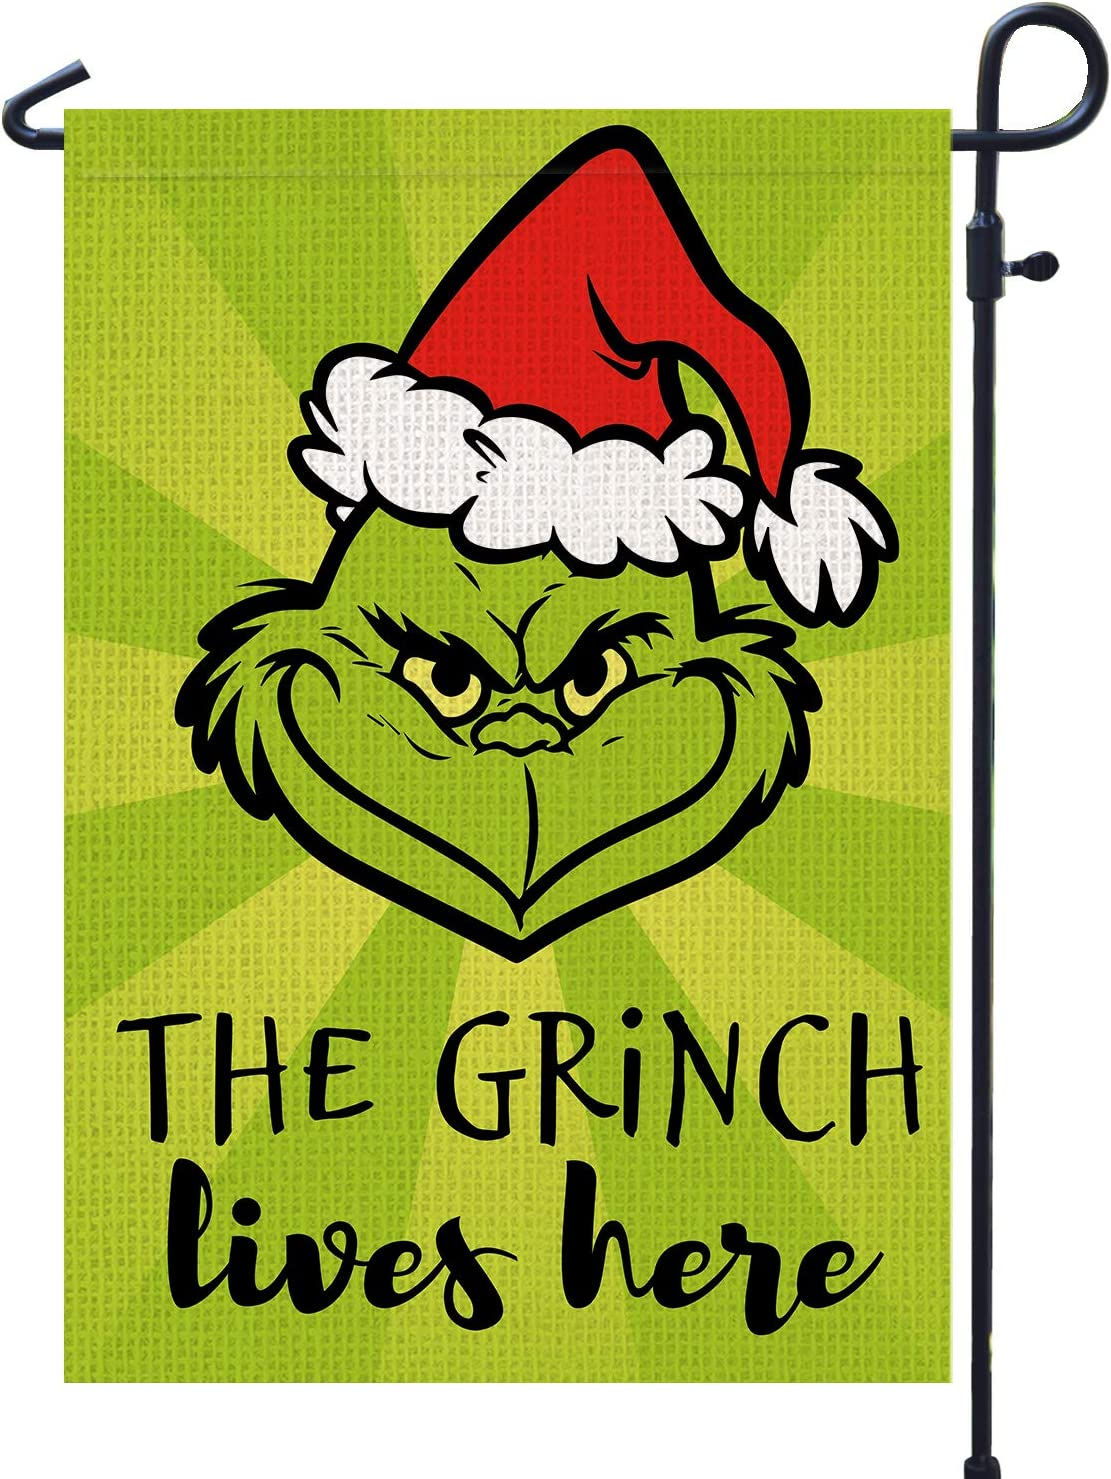 PAMBO Merry Christmas Garden Flag 12x18 Double Sided for Outside Yard Outdoor Decoration - Grinch Lives Here Christmas Garden Flag